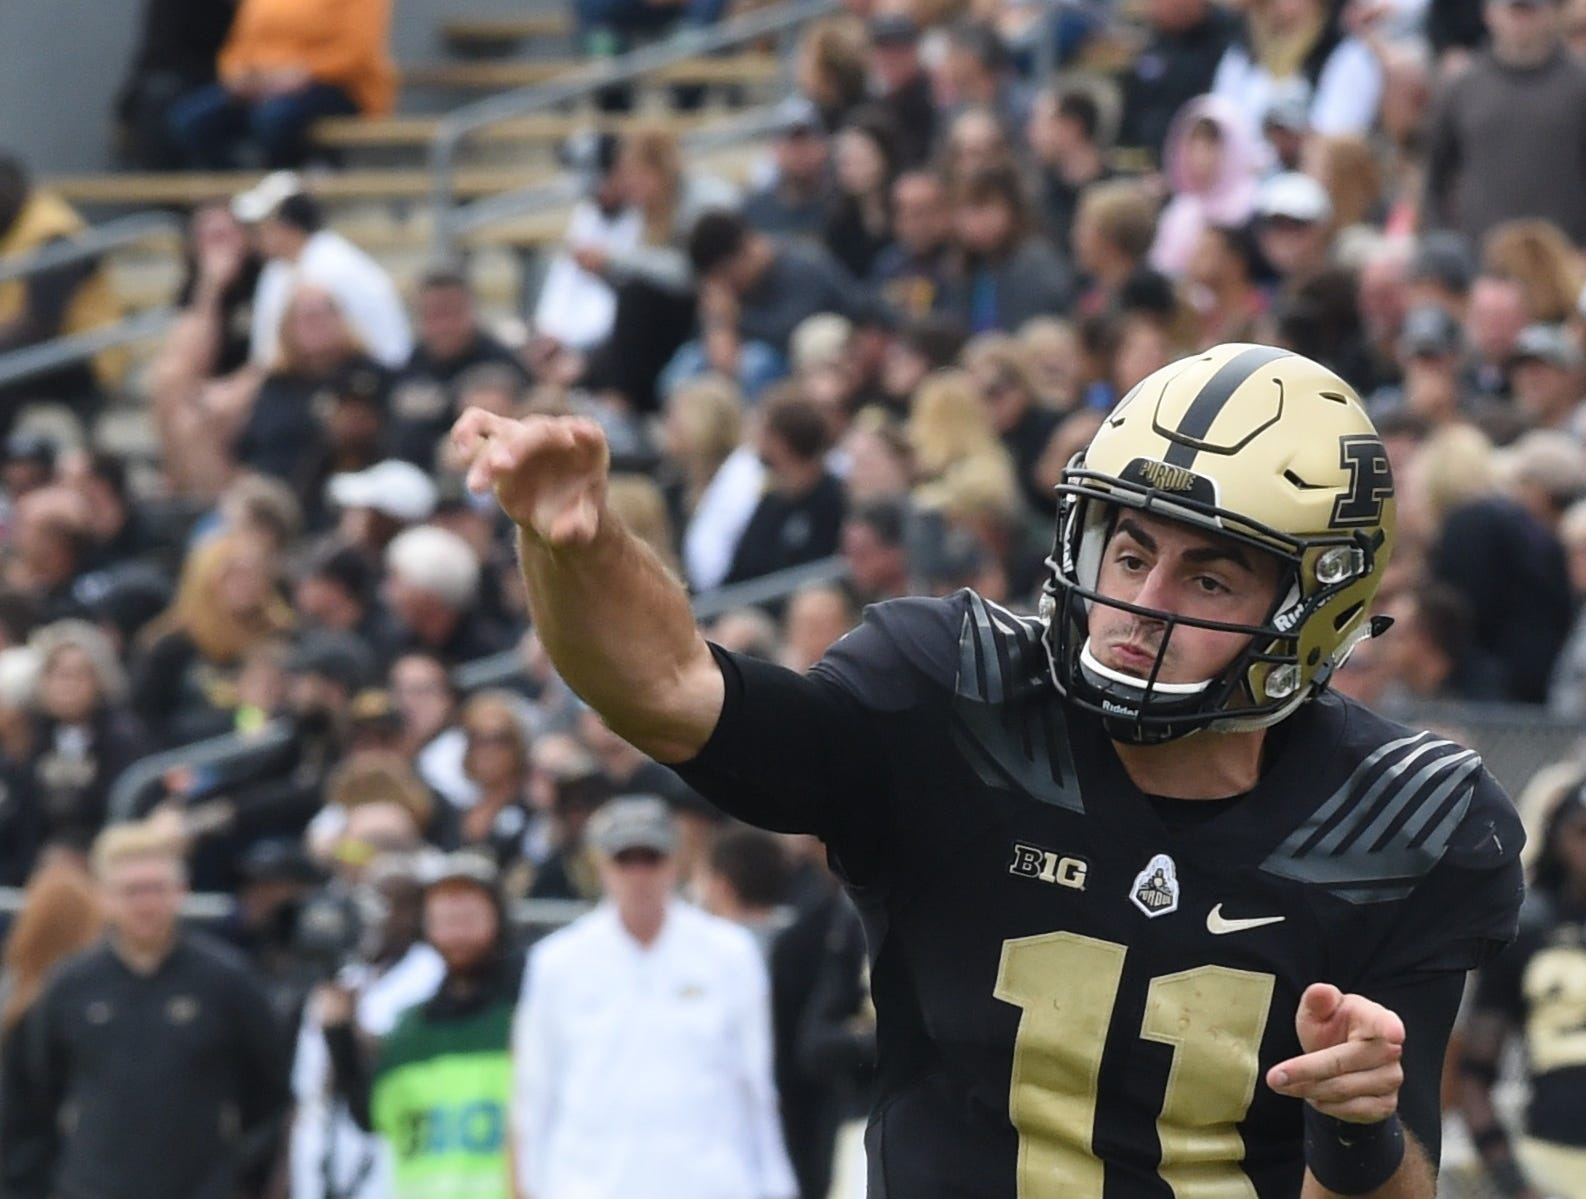 The Boiler faithful have something to cheer about against Boston College Saturday. David Blough